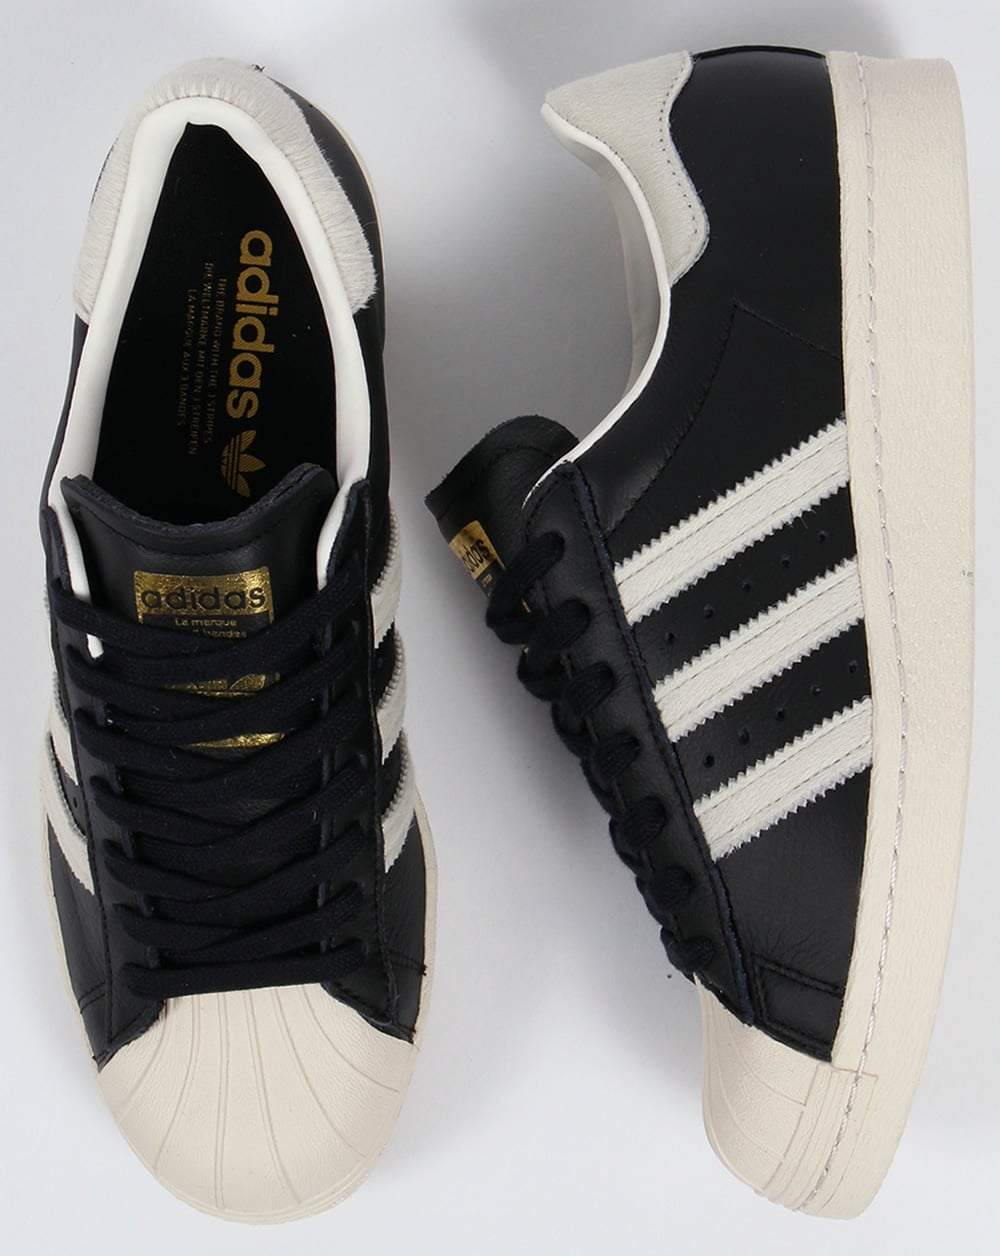 2d27519eb1 Adidas Superstar 80s Trainers Black/White/Gold